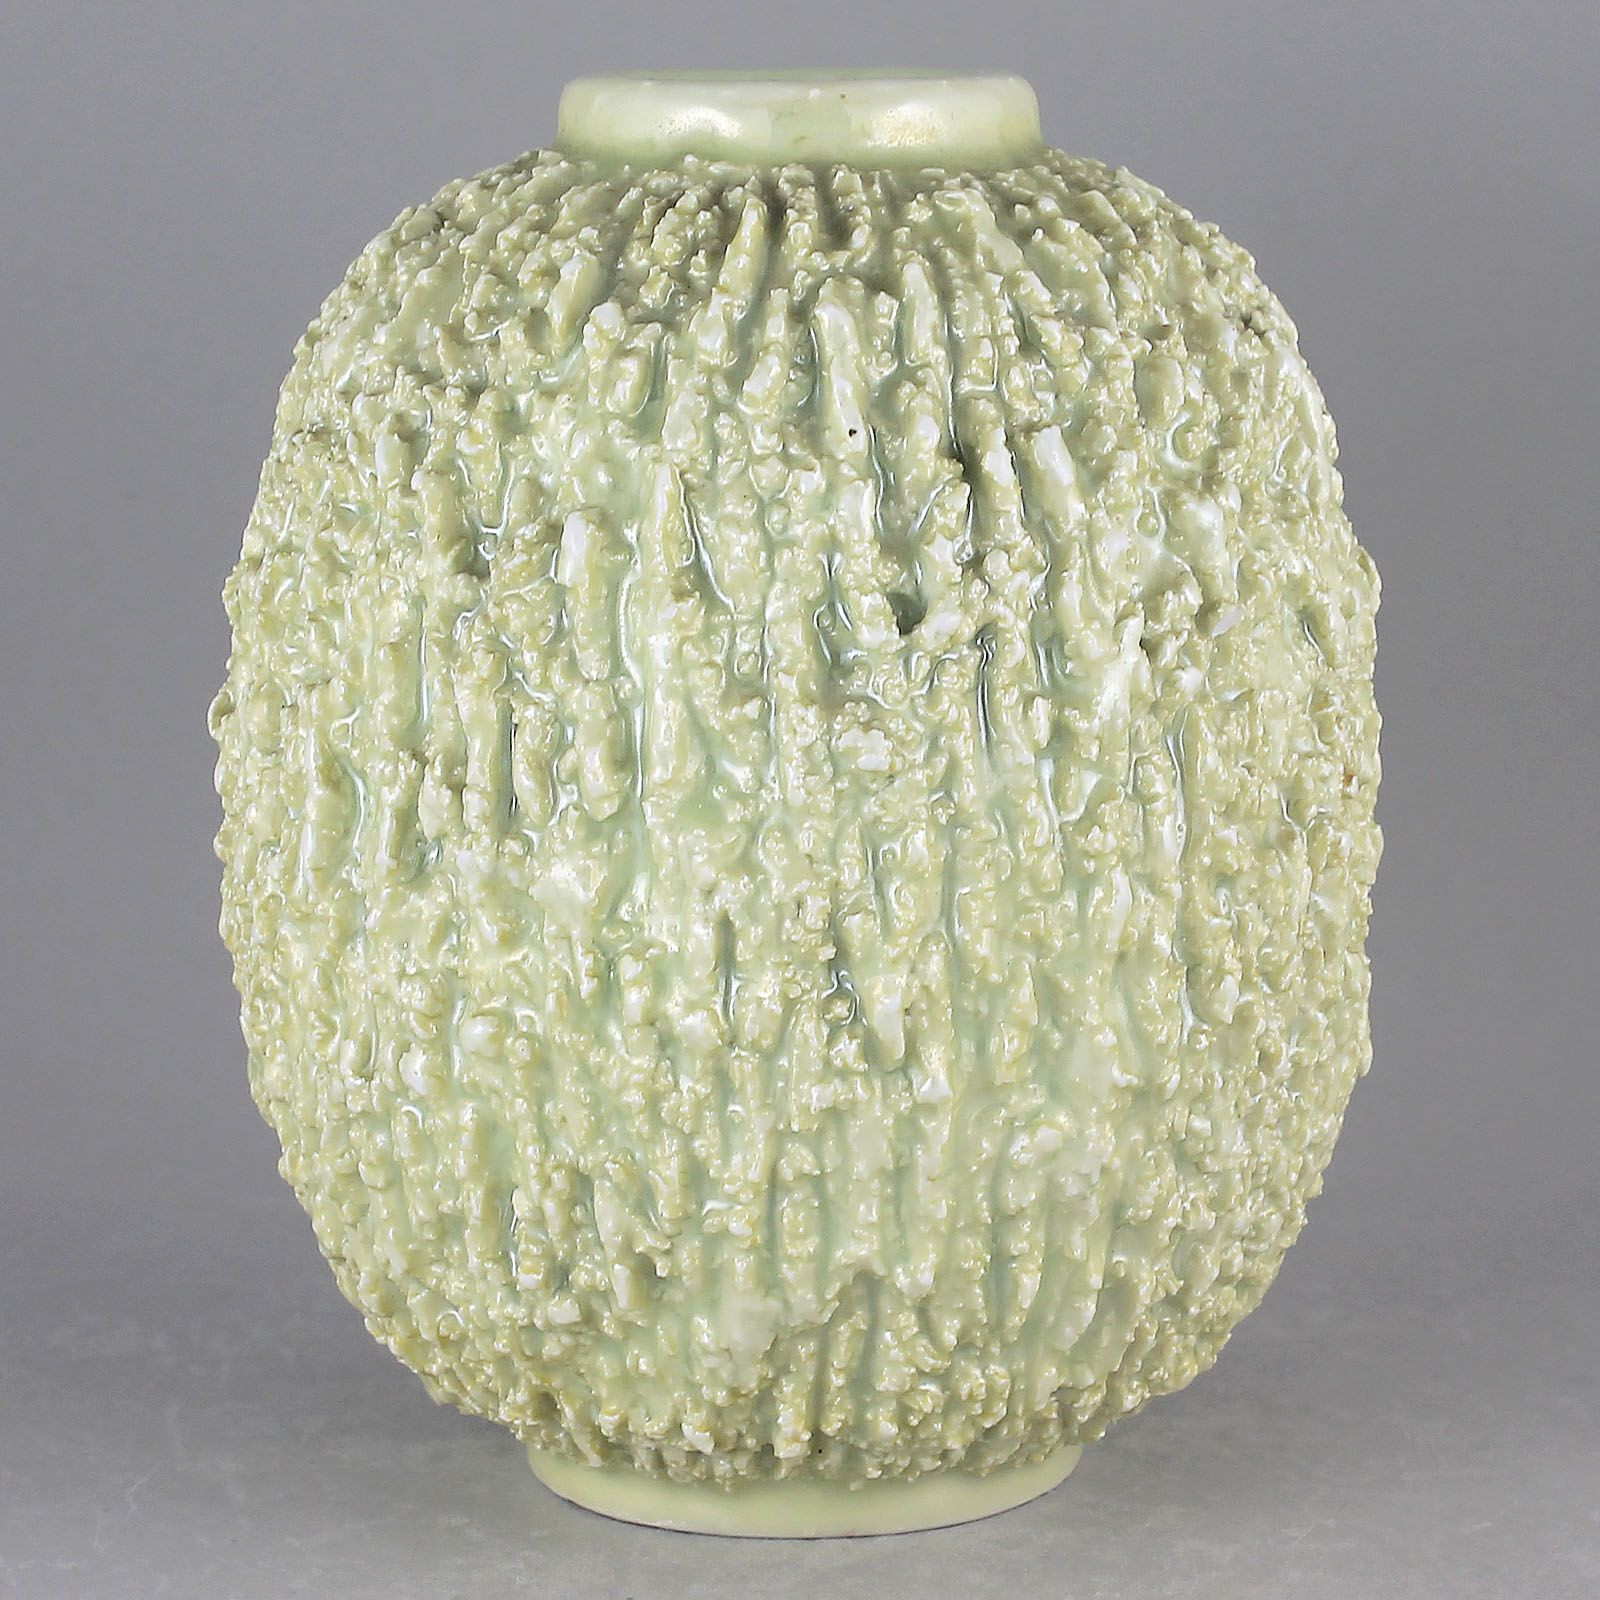 small yellow vase of gunnar nylund 1936 hypnotic hedgehog vase in white medium regarding gunnar nylund 1936 hypnotic hedgehog vase in white medium